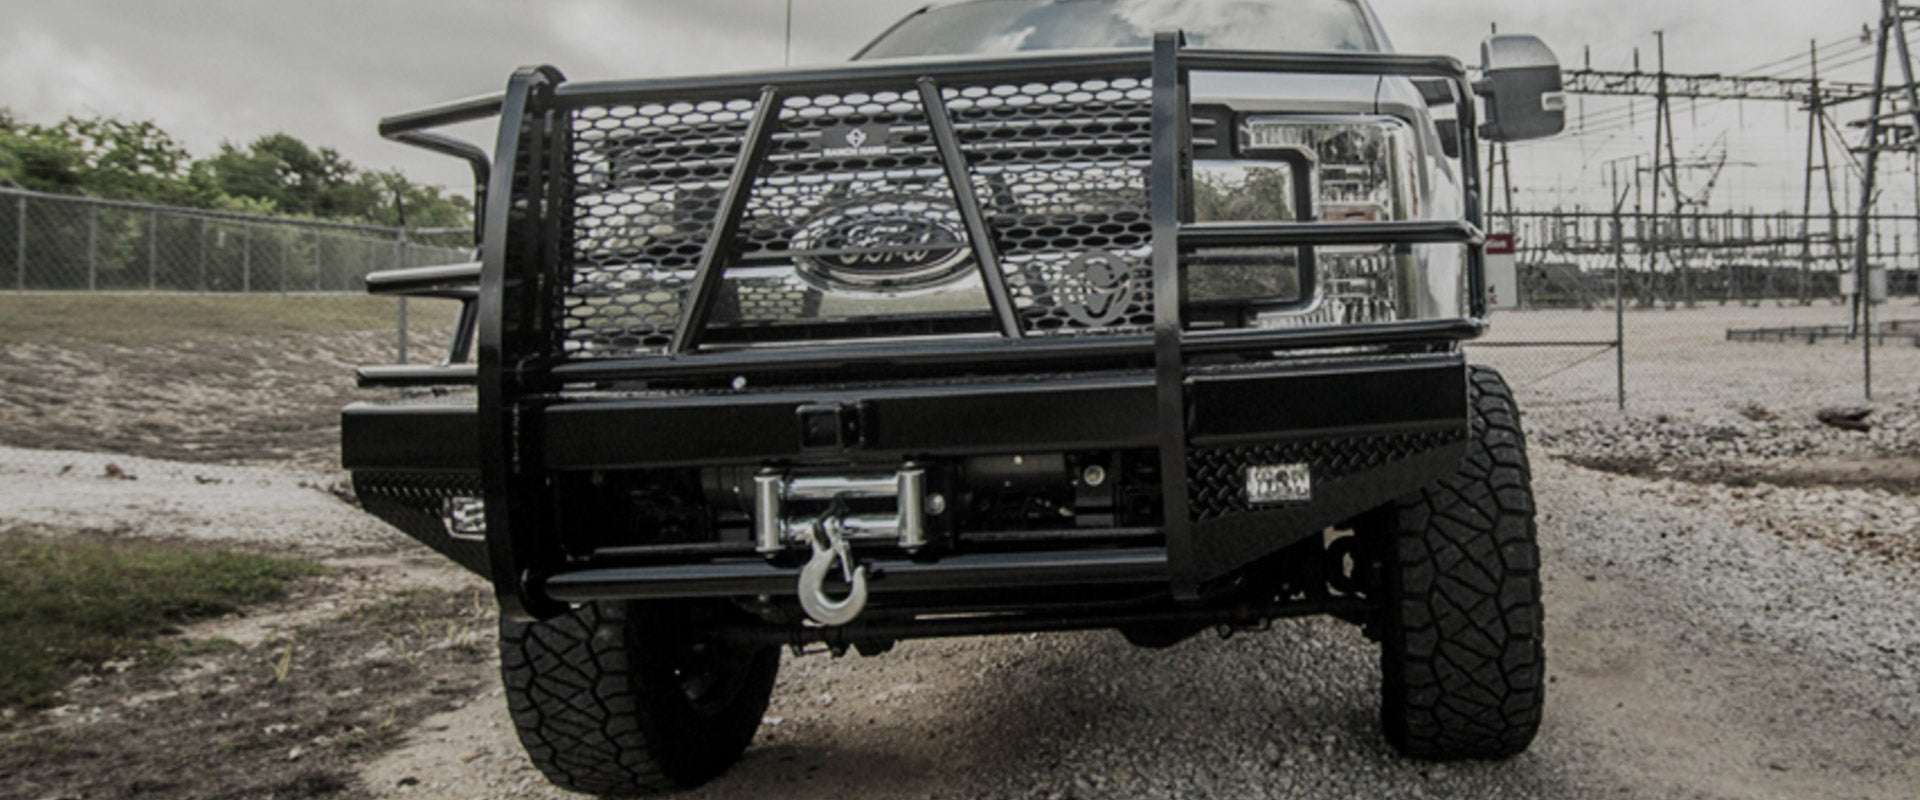 Ranch Hand Legend bumpers winch-ready